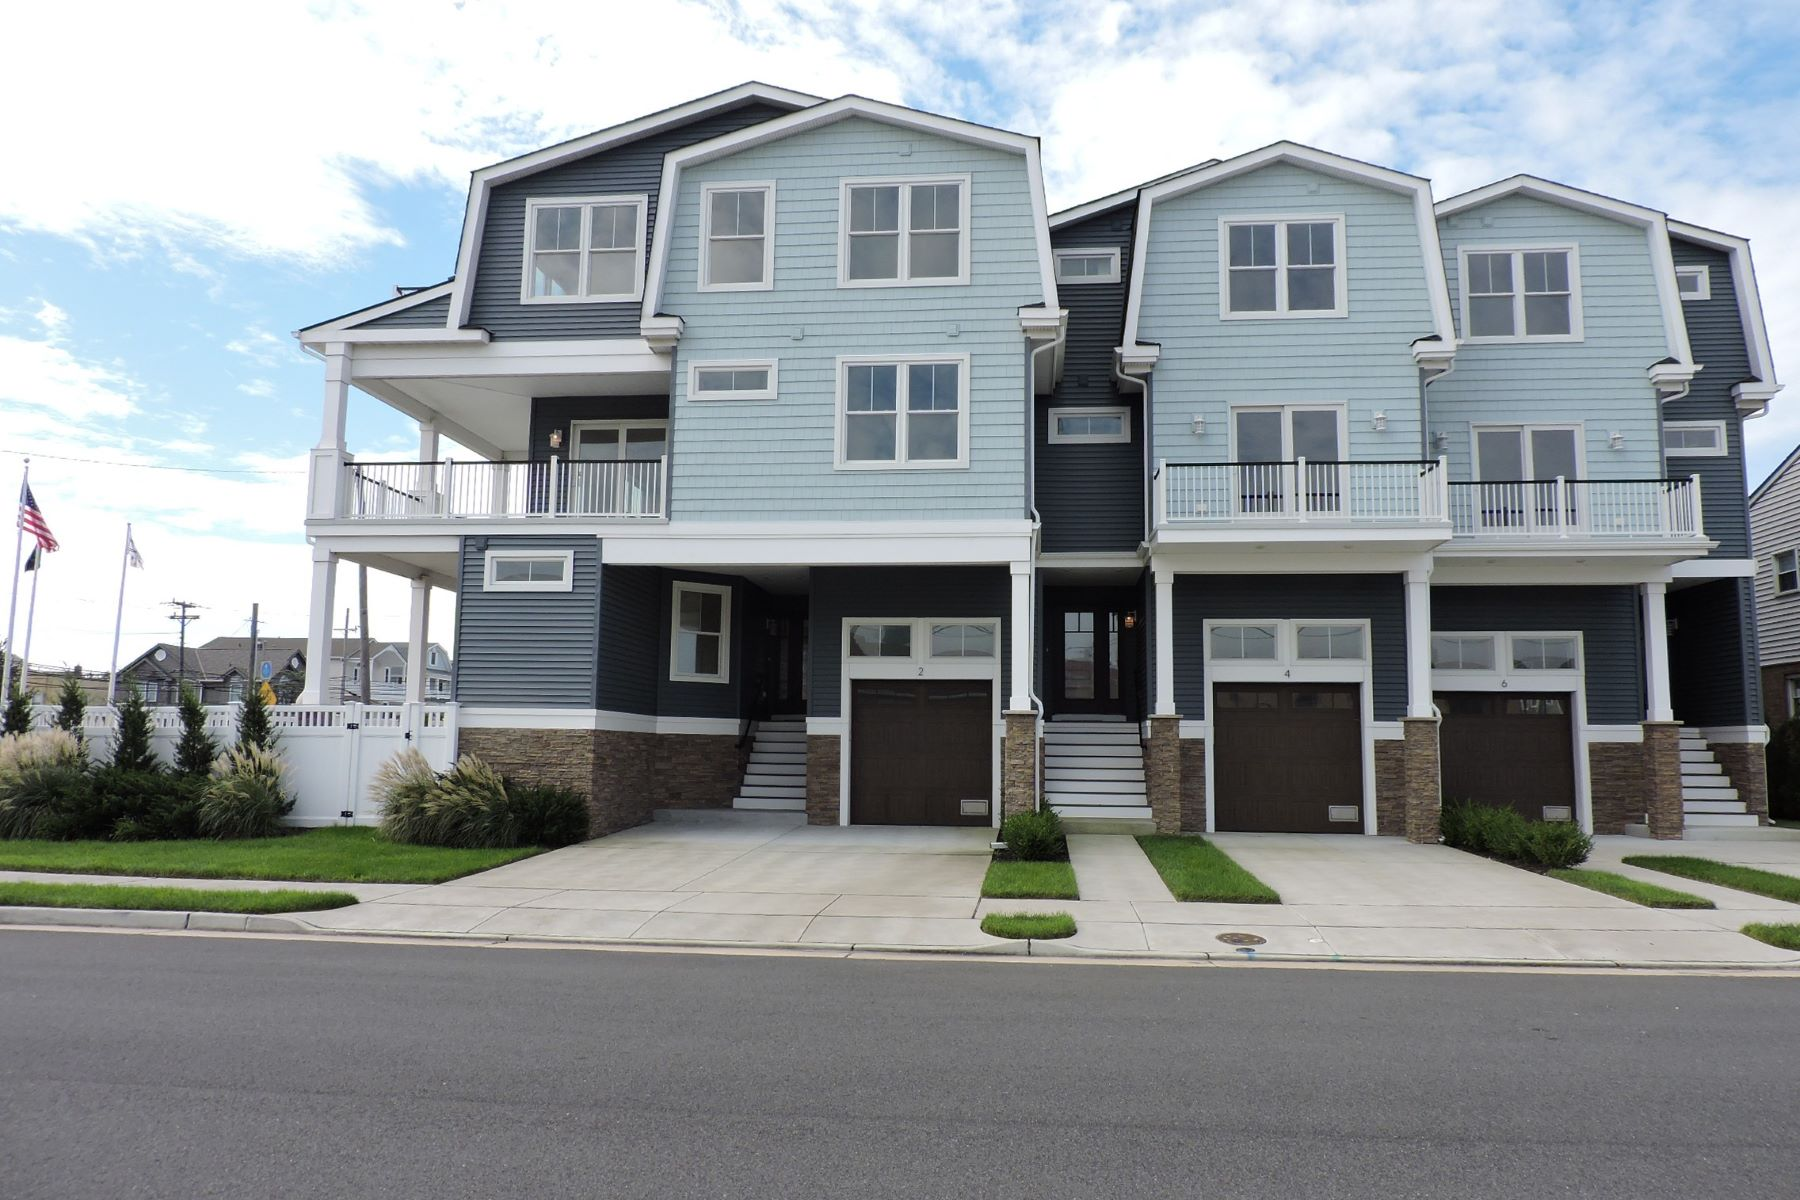 Townhouse for Sale at 6 N 28th Ave Longport, New Jersey 08403 United States